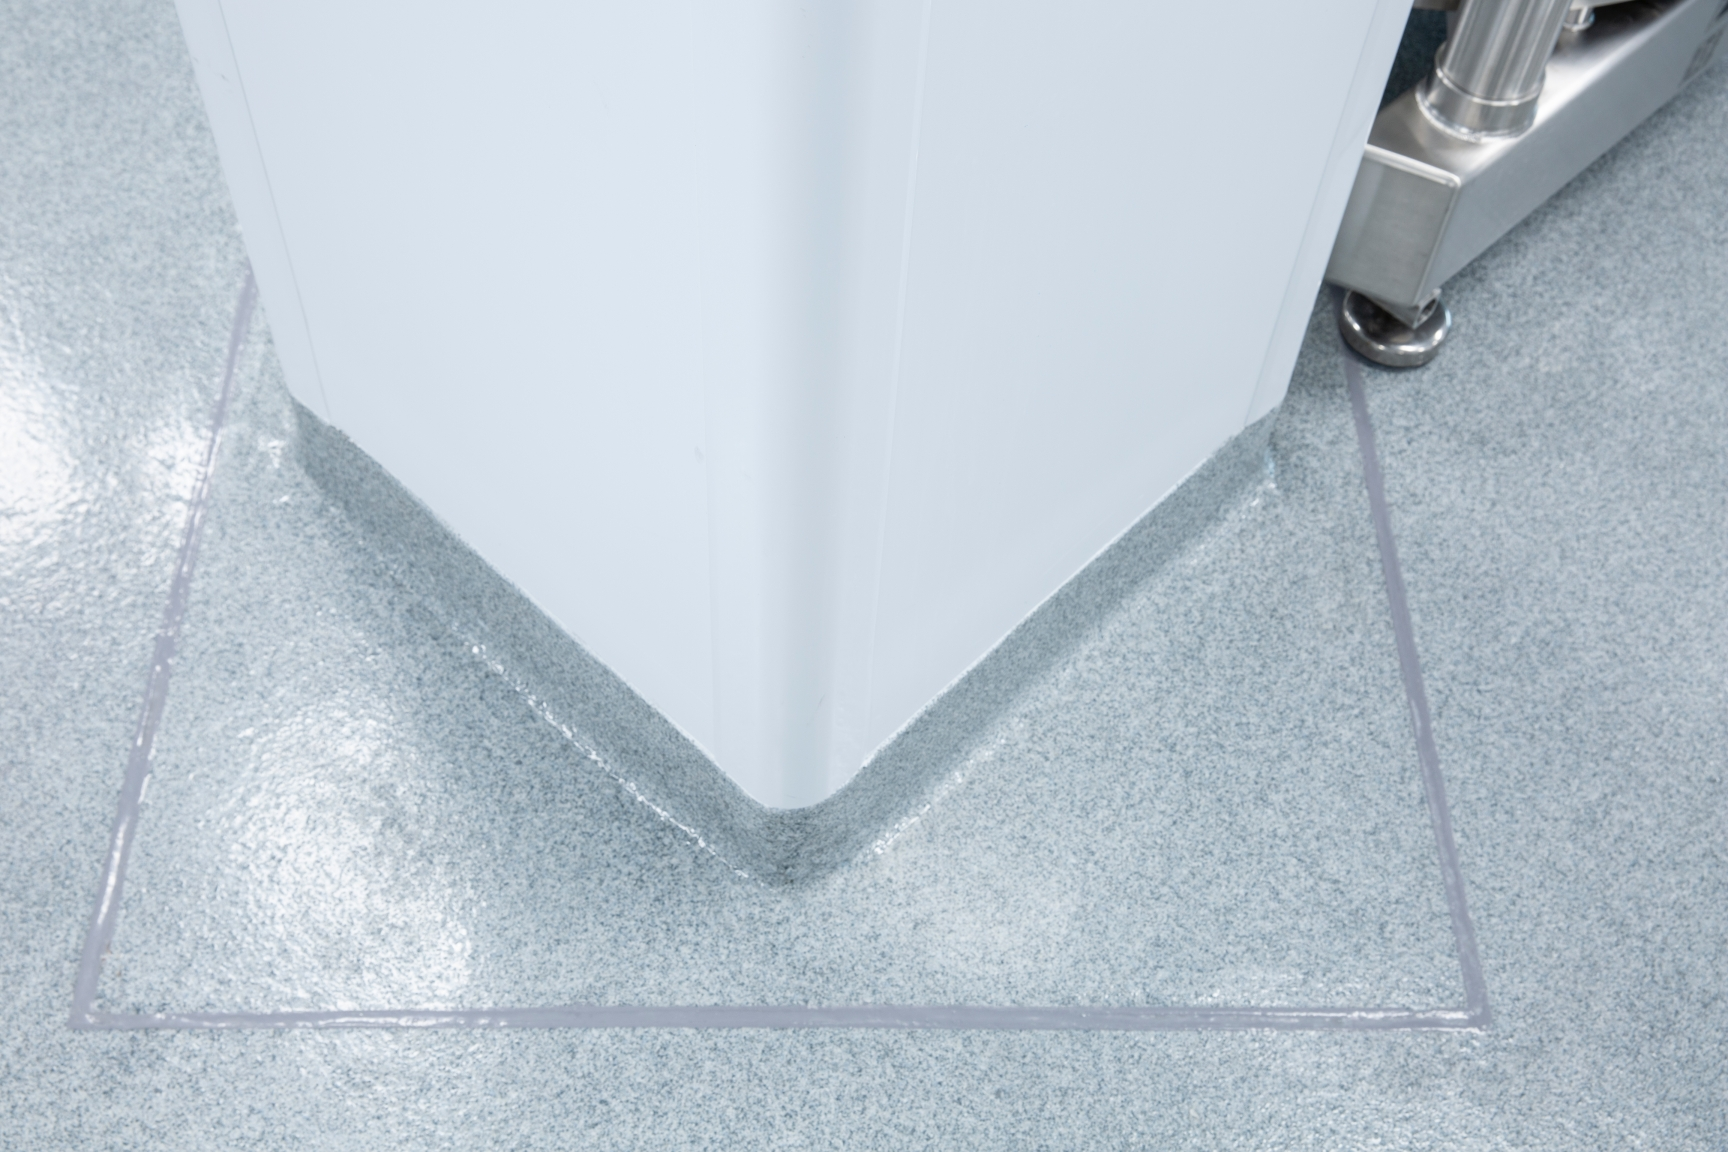 How Do You Choose the Best Solution for Your Cleanroom Floor?